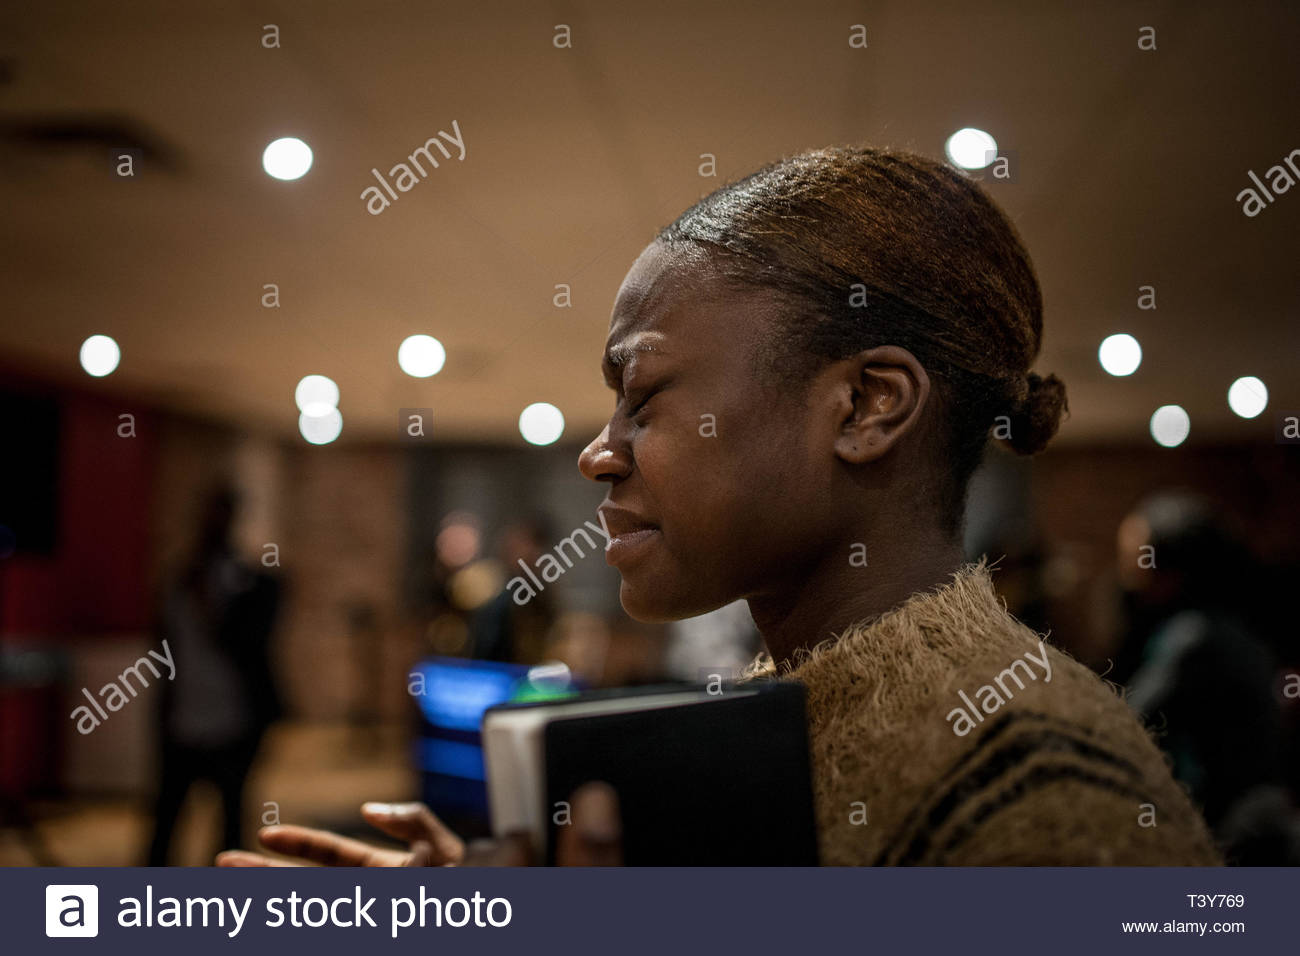 January 21, 2018 - Montreal, Quebec, Canada: A woman evangelist grimaces with fervor at a meeting of prayer and worship of God at Evangelist Church. ( - Stock Image